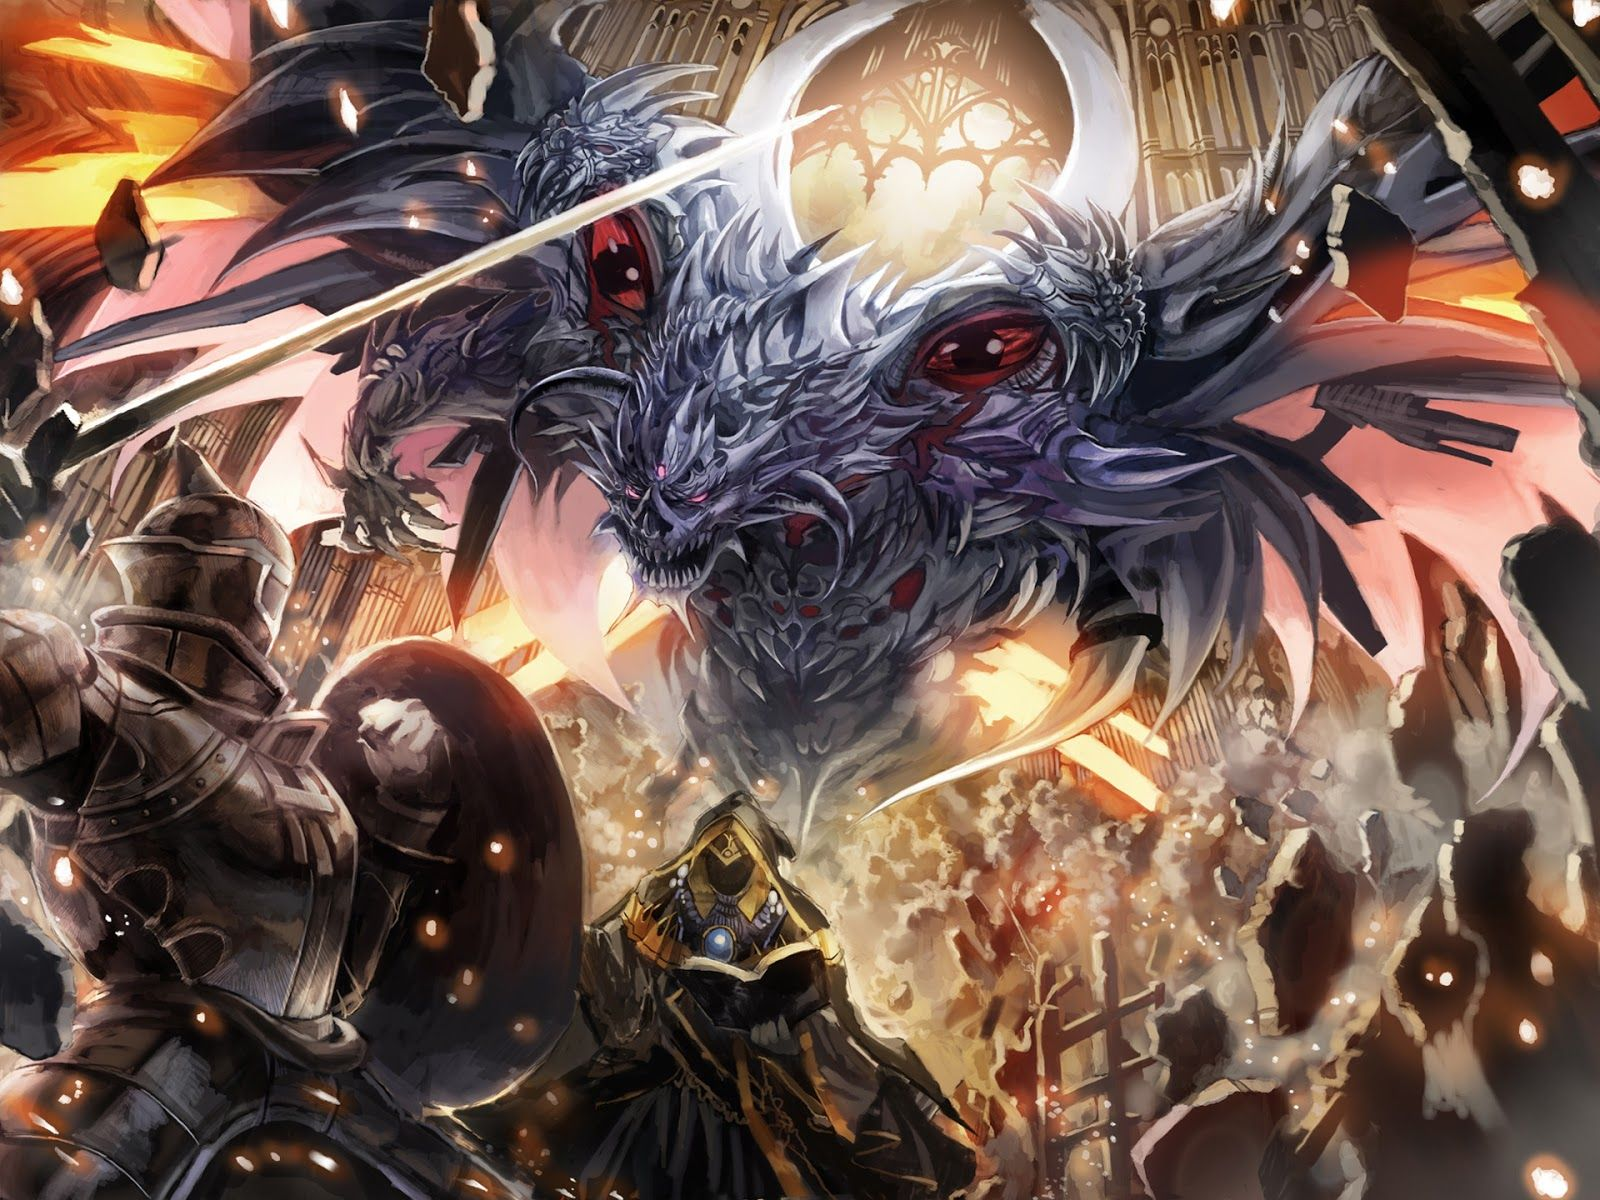 Epic anime battle wallpapers top free epic anime battle - Anime war wallpaper ...